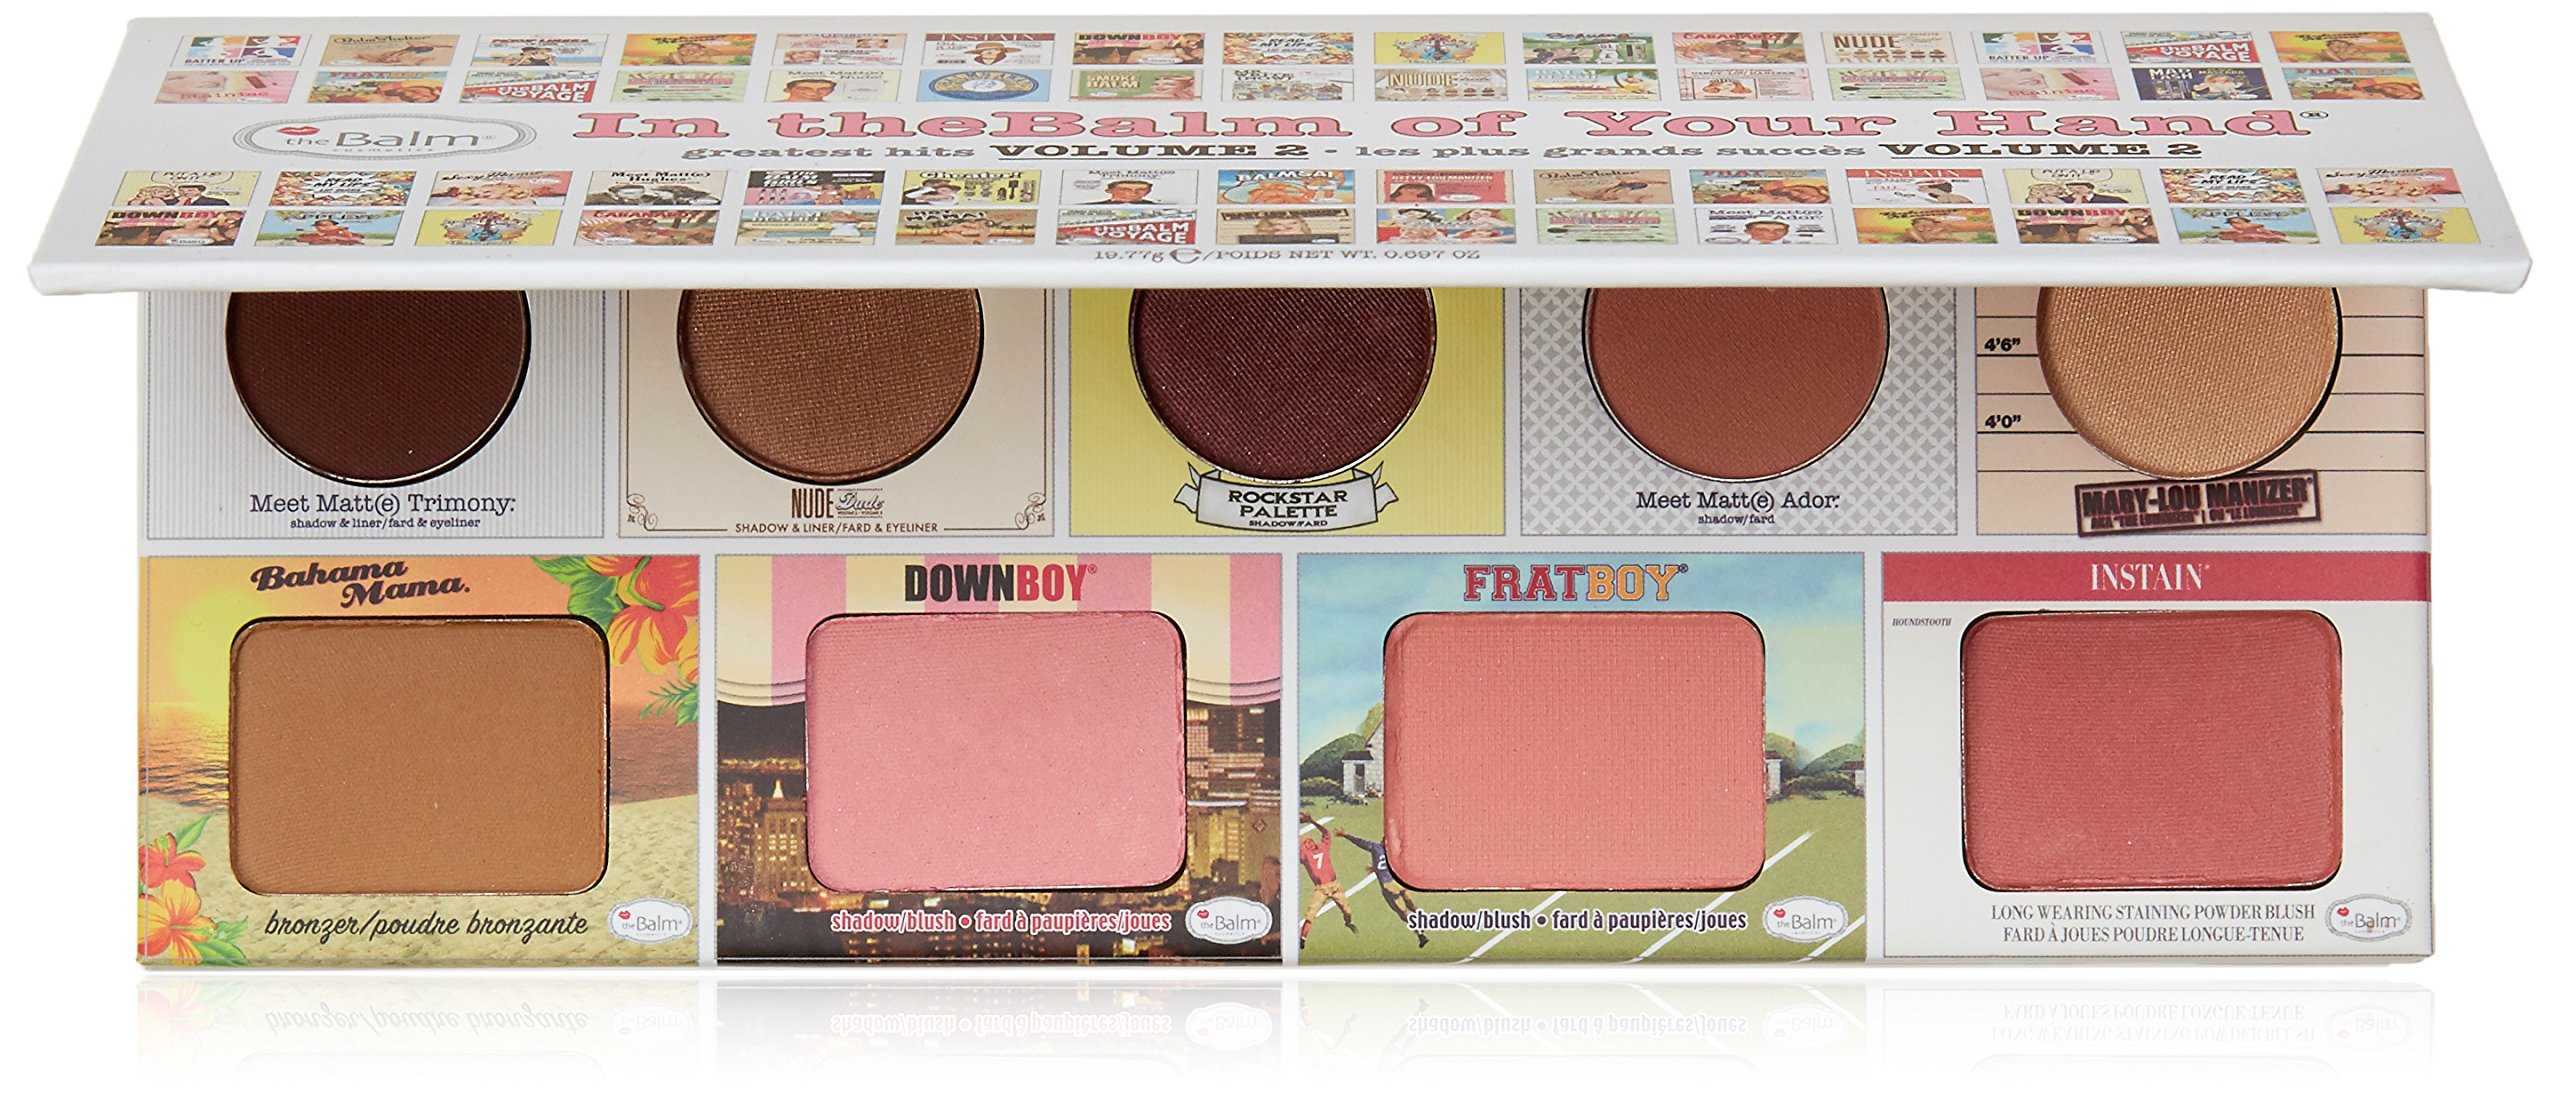 of Your Hand Greatest Hits Vol. 2 Face Palette, 4 Blendable Eyeshadows, 3 Blush Colors, Matte Bronzer, Champagne-Hued Highlighter